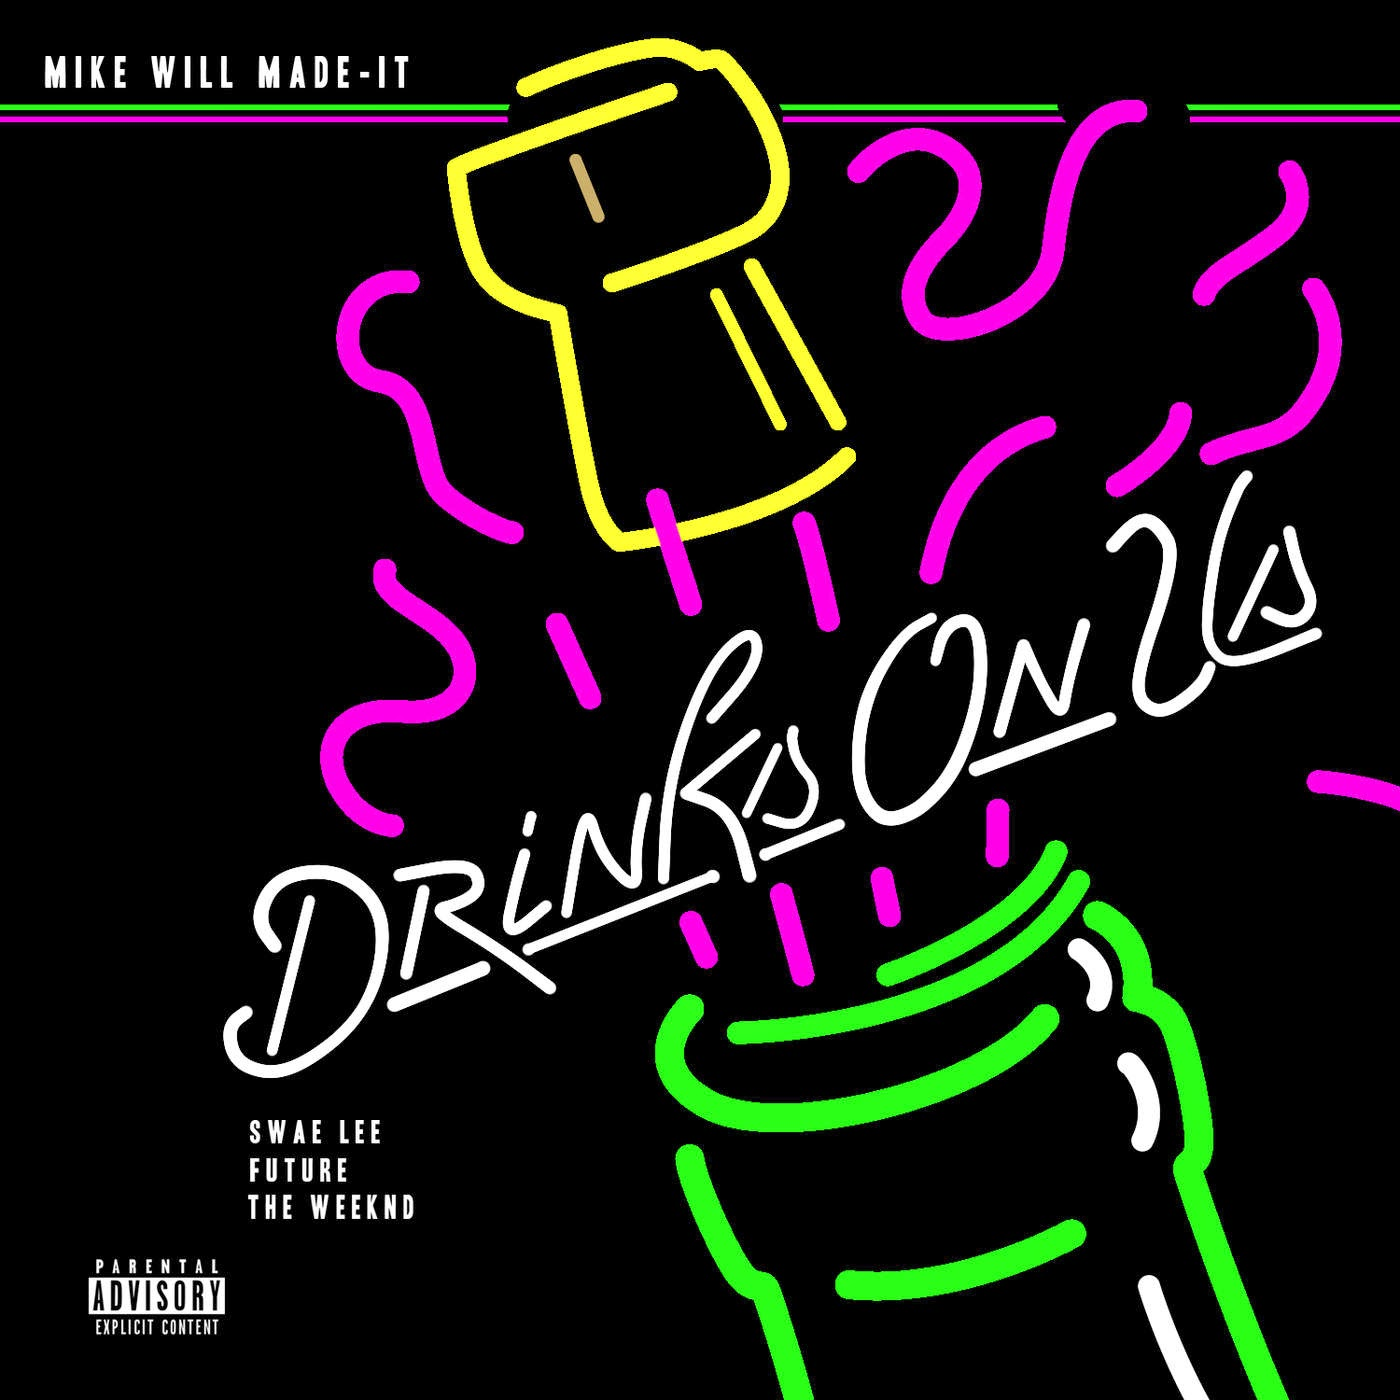 Mike Will Made-It - Drinks On Us (feat. Swae Lee, Future & The Weeknd) - Single Cover